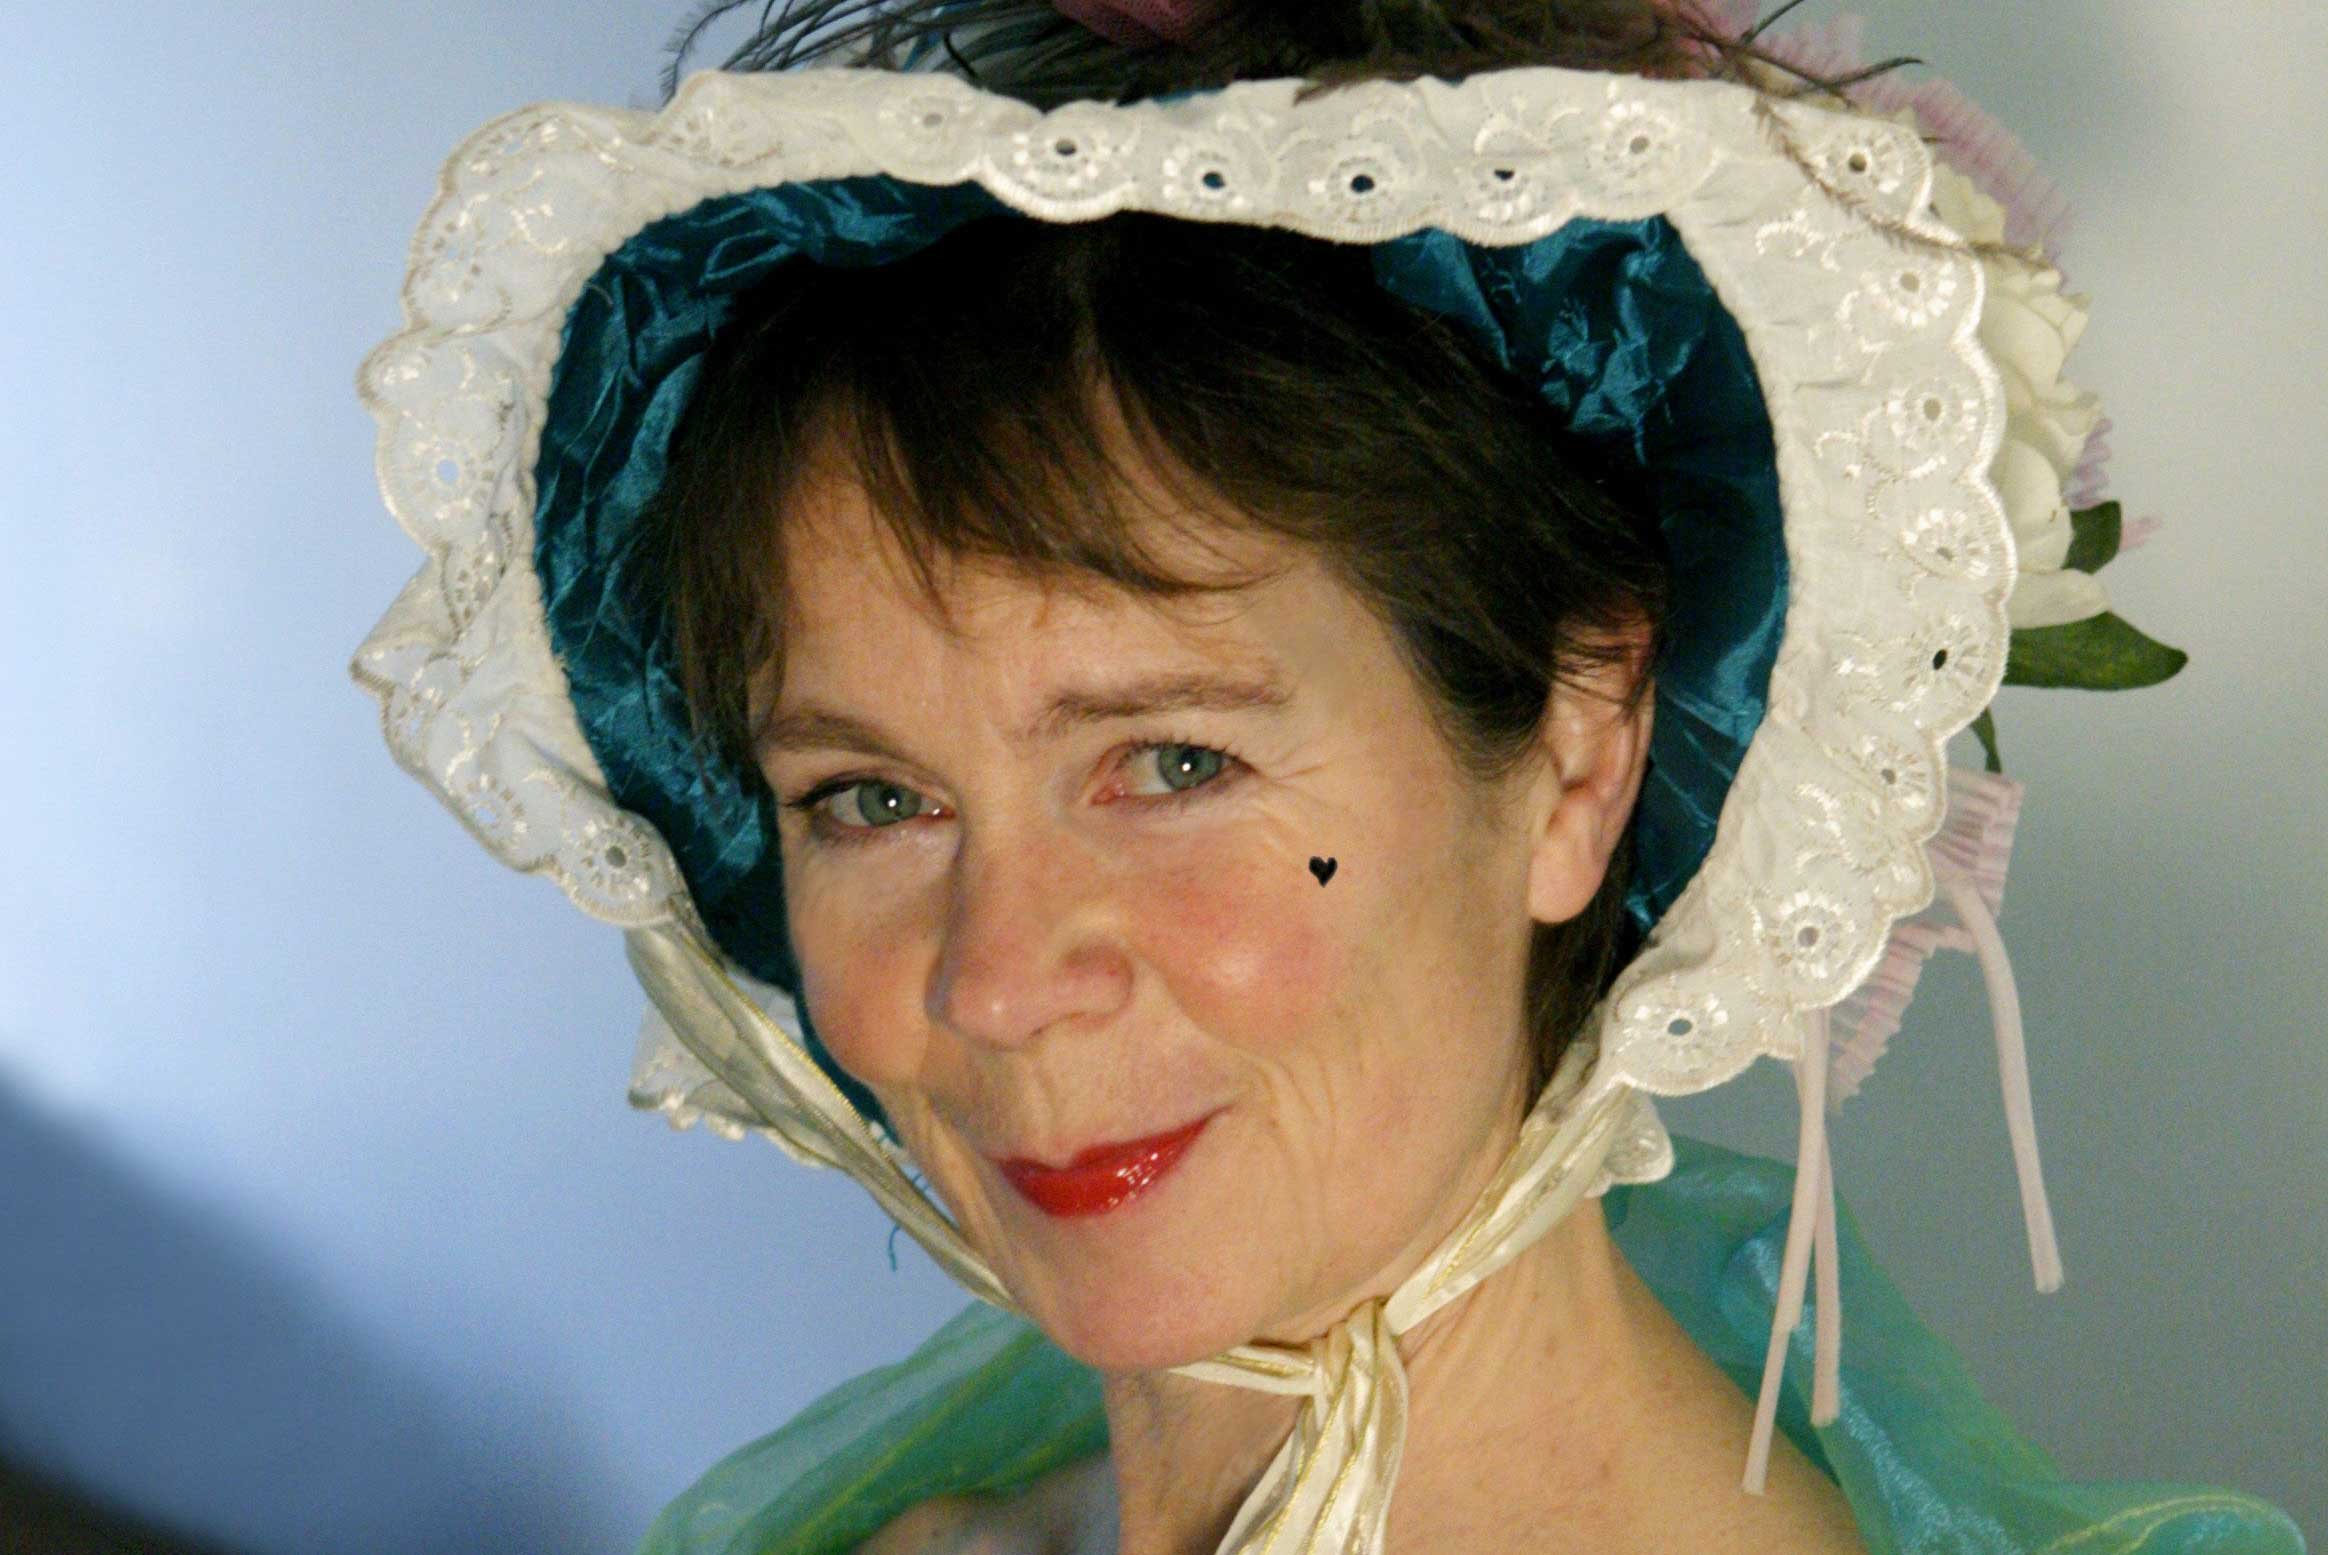 Celia Imrie as Mrs Malaprop in 'The Rivals' courtesy ofCatherine Ashmore